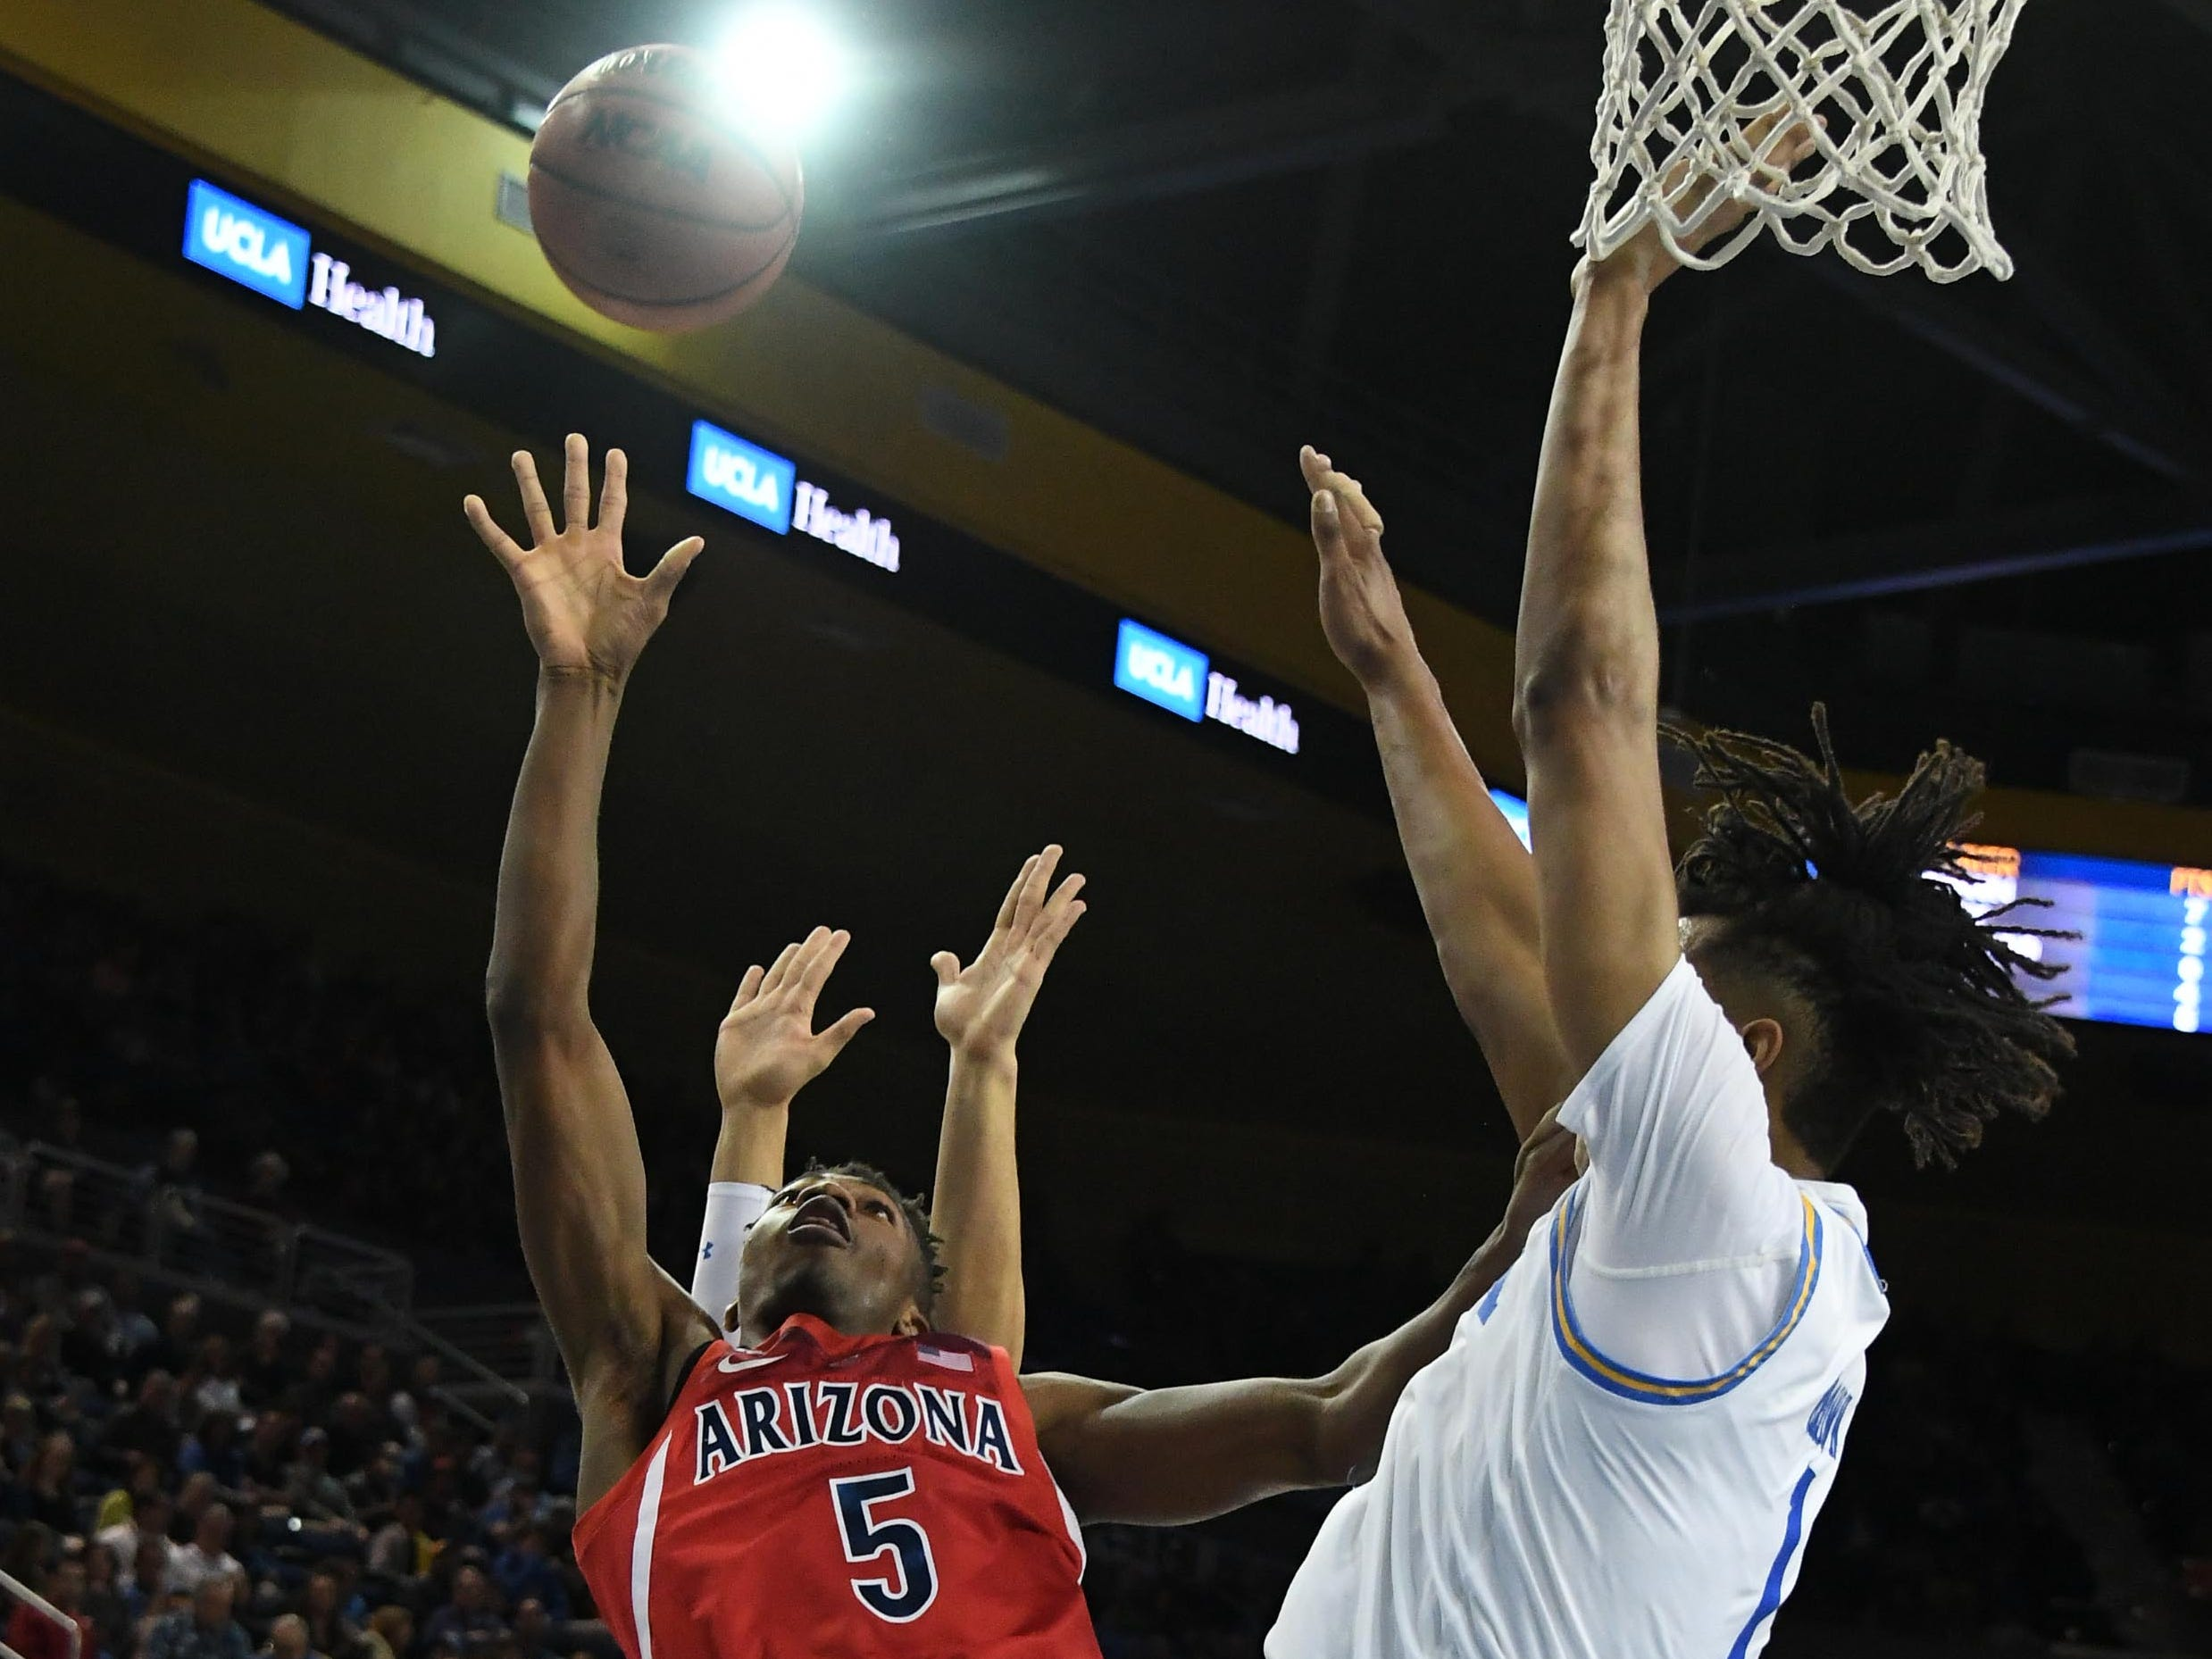 Jan 26, 2019; Los Angeles, CA, USA; Arizona Wildcats guard Brandon Randolph (5) shoots against the UCLA Bruins in the first half at Pauley Pavilion.